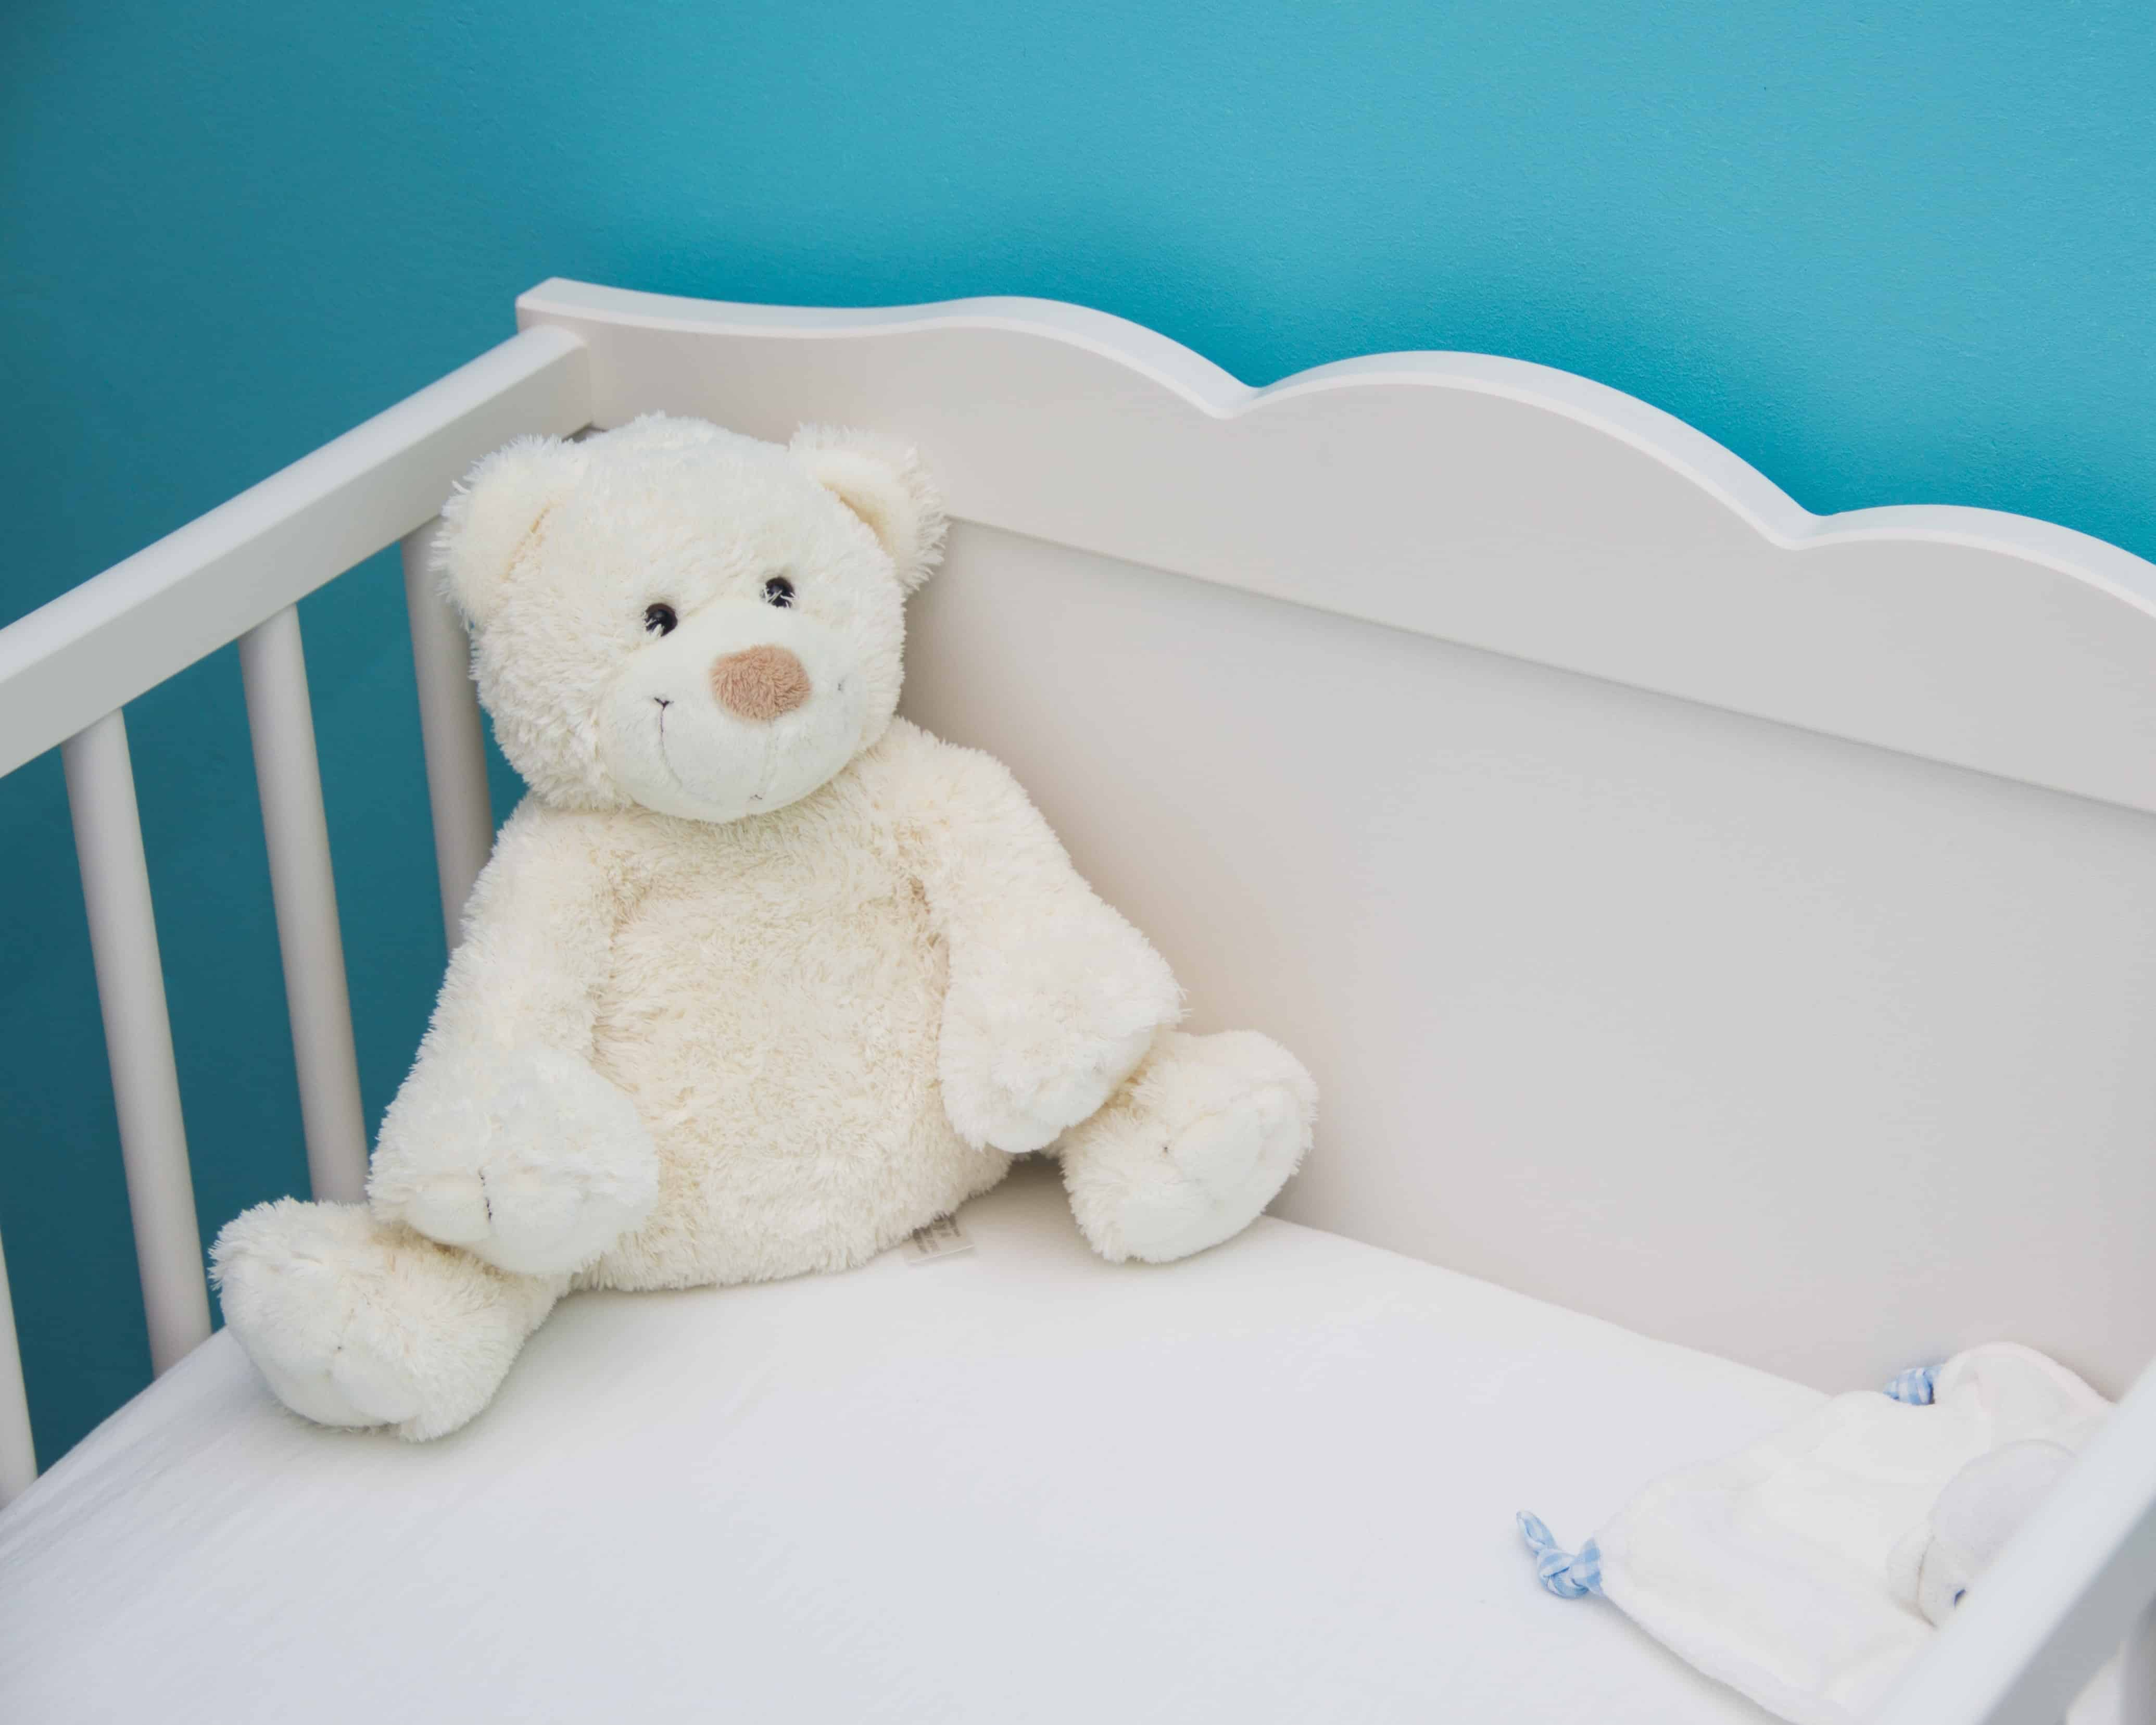 If you're the parent of a newborn baby, you may be wondering when and how to help your baby transition from a bassinet or basket to a crib. Check out these seven hacks to effectively get your baby to transition to crib without too much struggle...